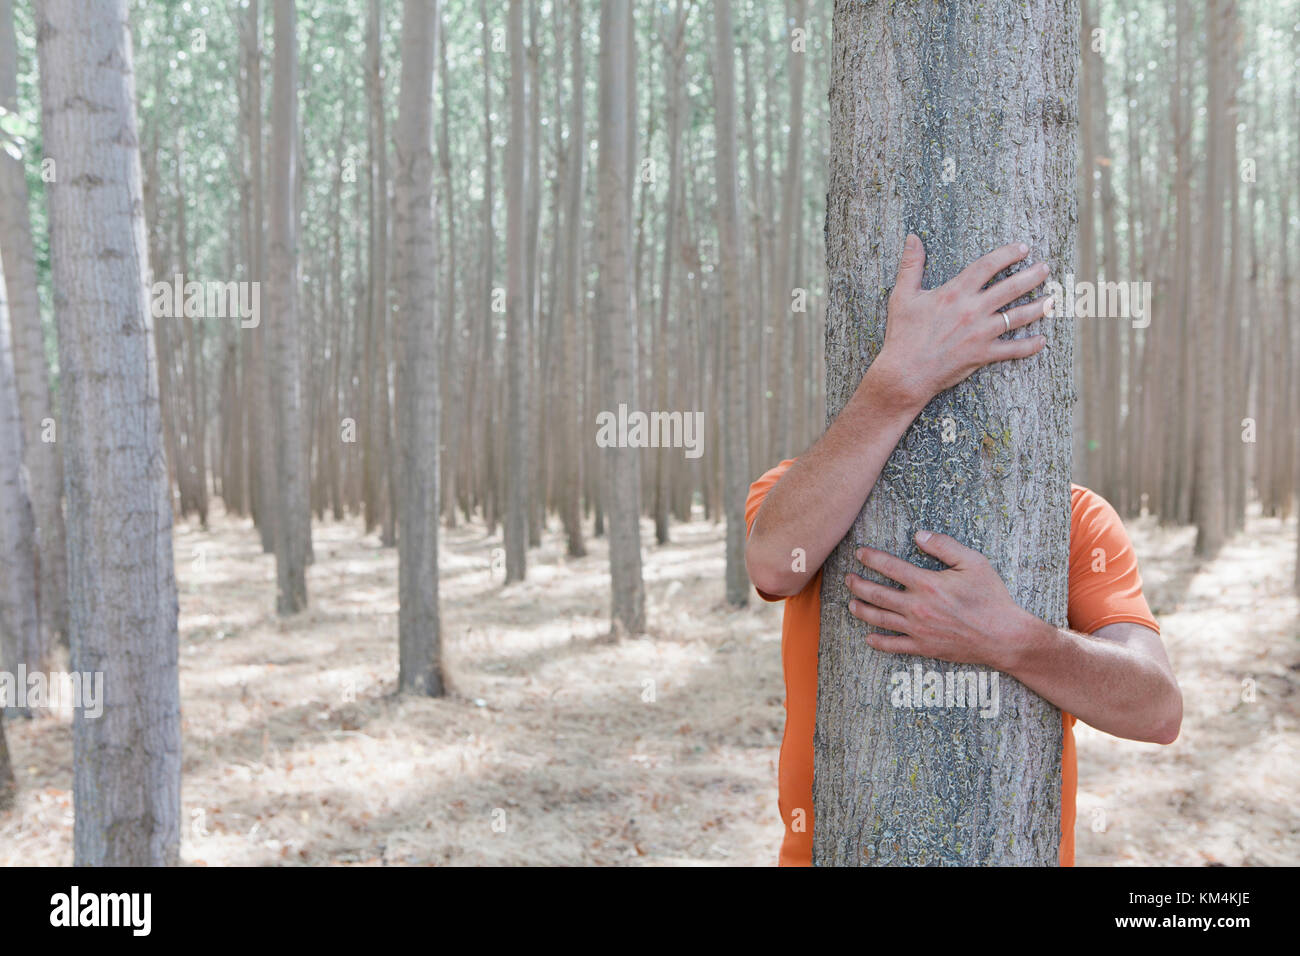 Man wrapping his arms around and hugging a poplar tree on a commercial tree farm. - Stock Image